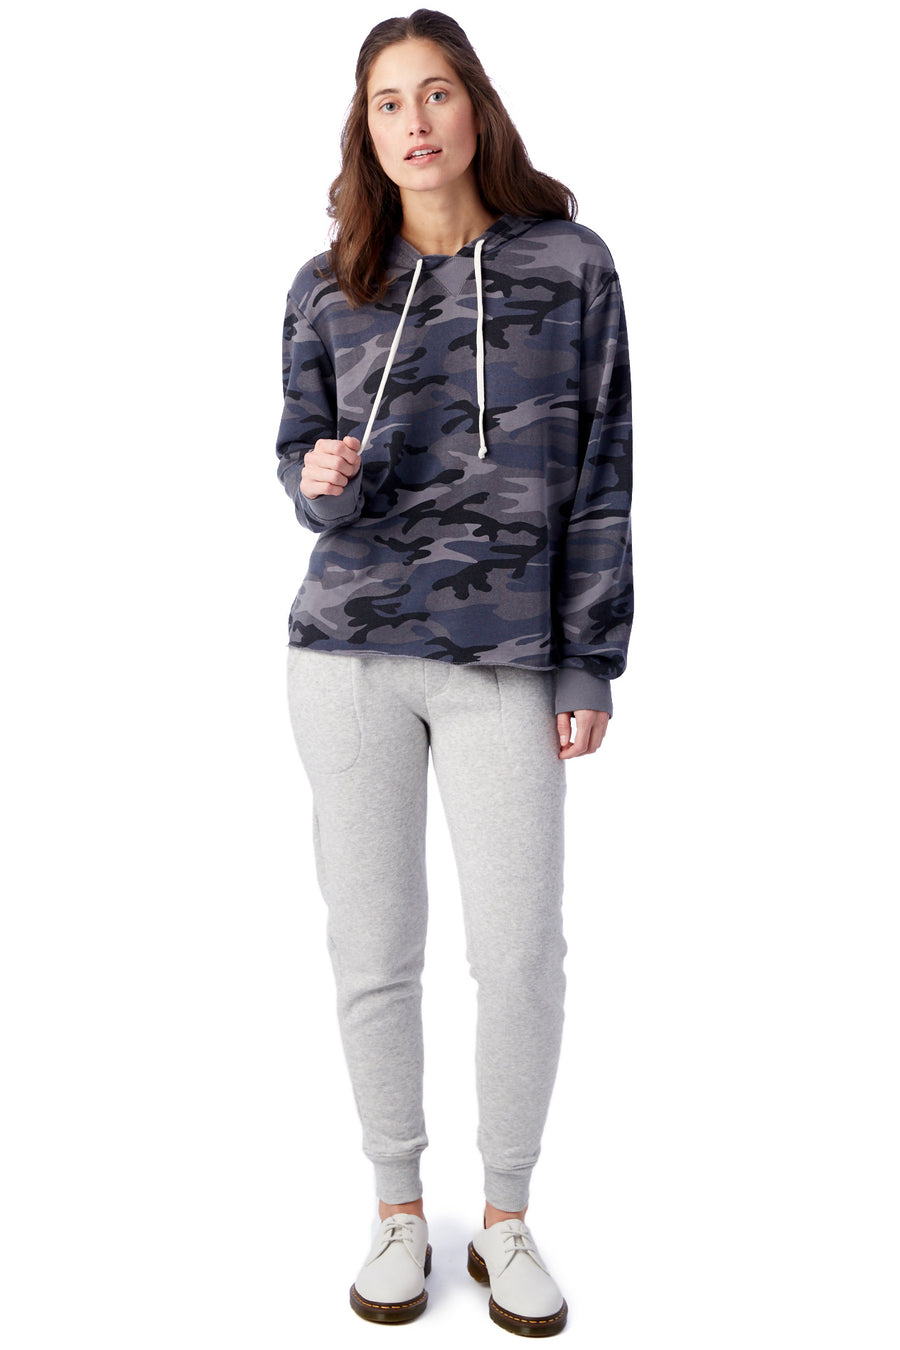 Day Off Burnout French Terry Hoodie - Slate Camo - Pavilion